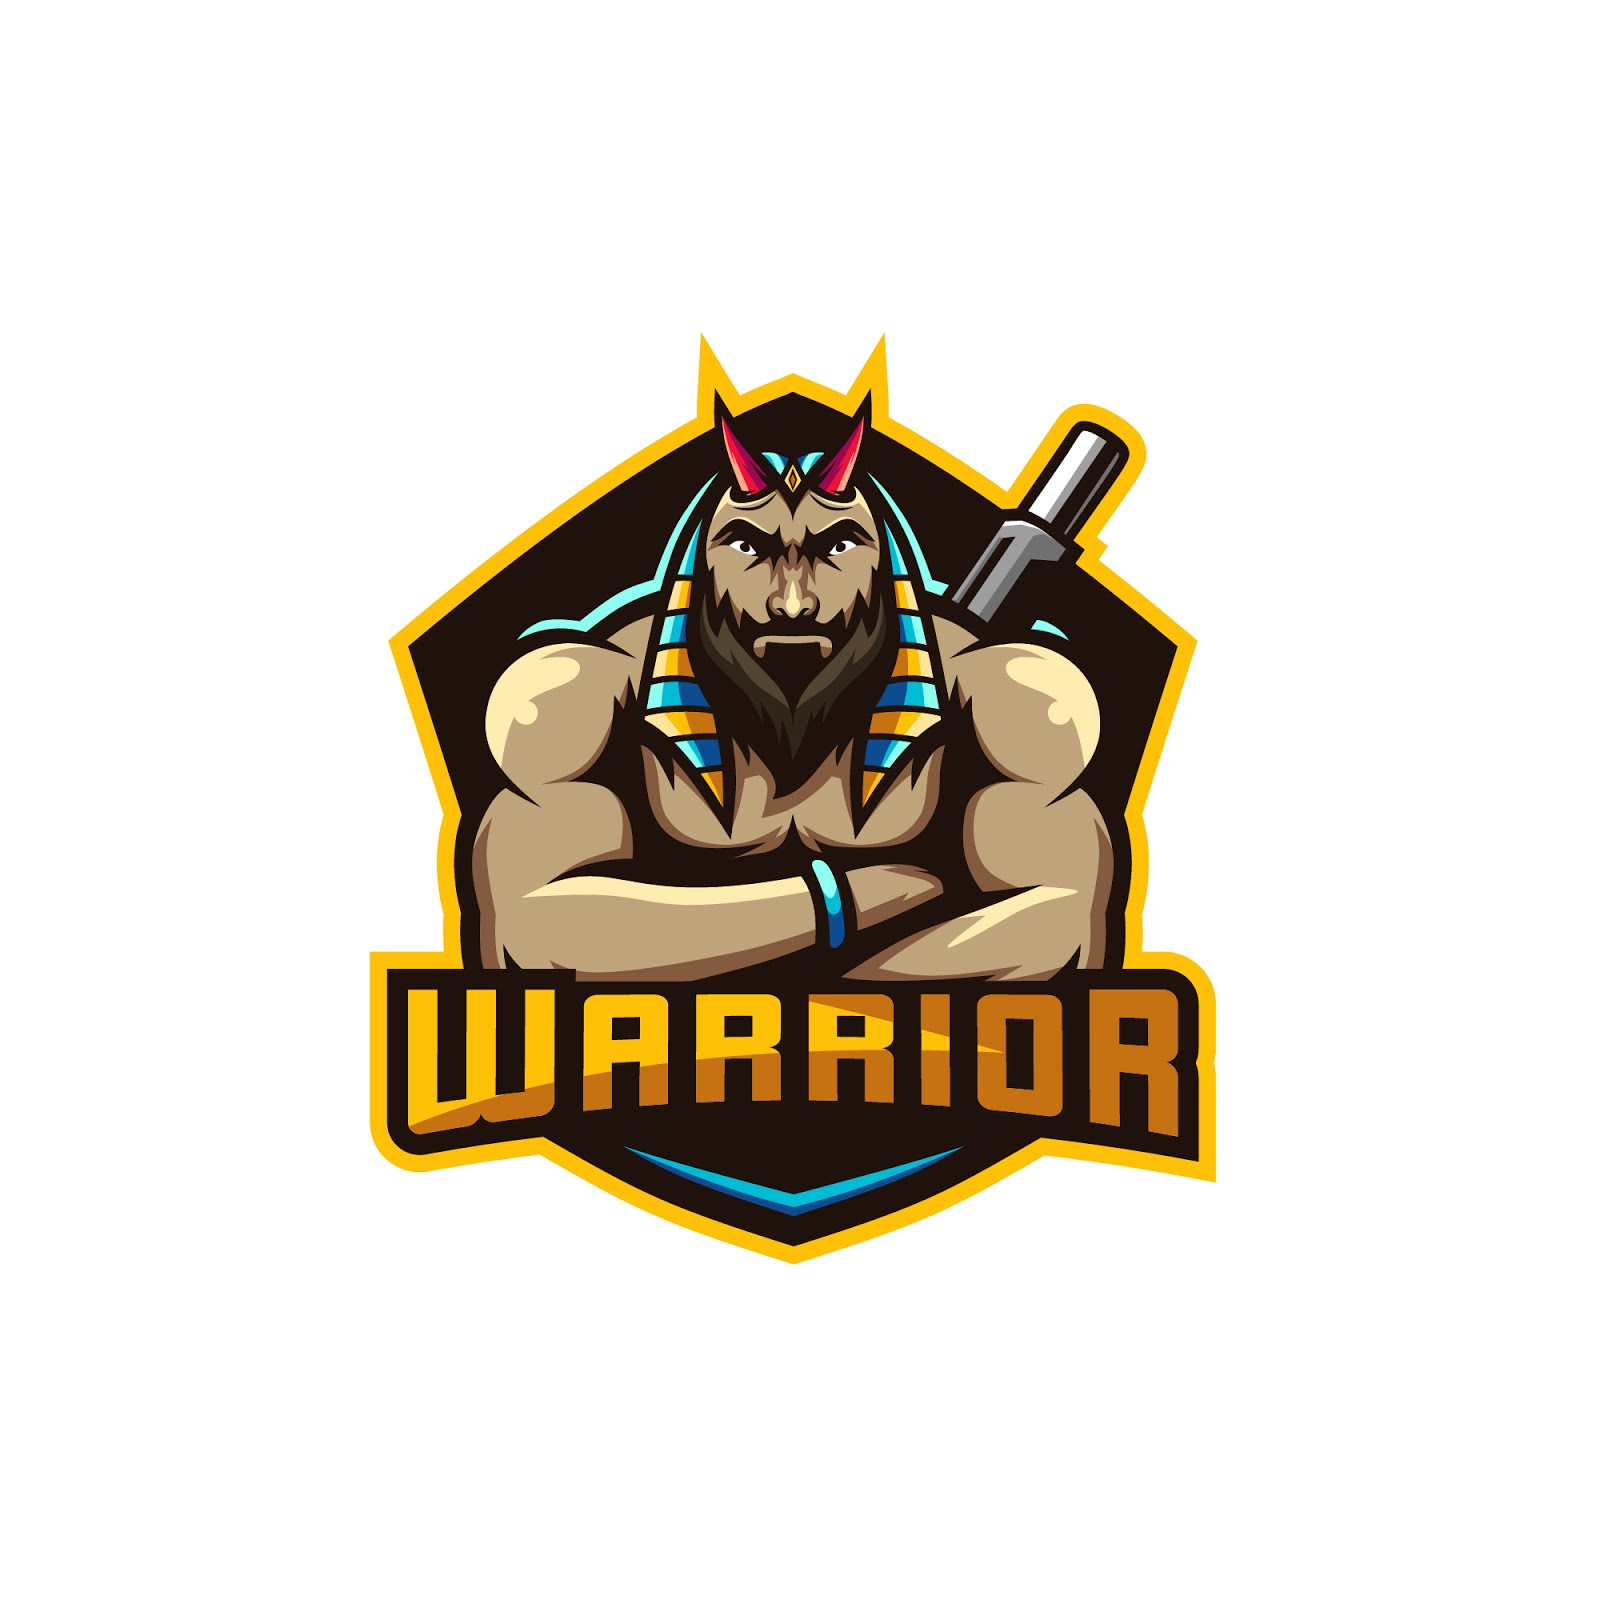 Anubis Warrior Illustration Premium Free Download Vector CDR, AI, EPS and PNG Formats